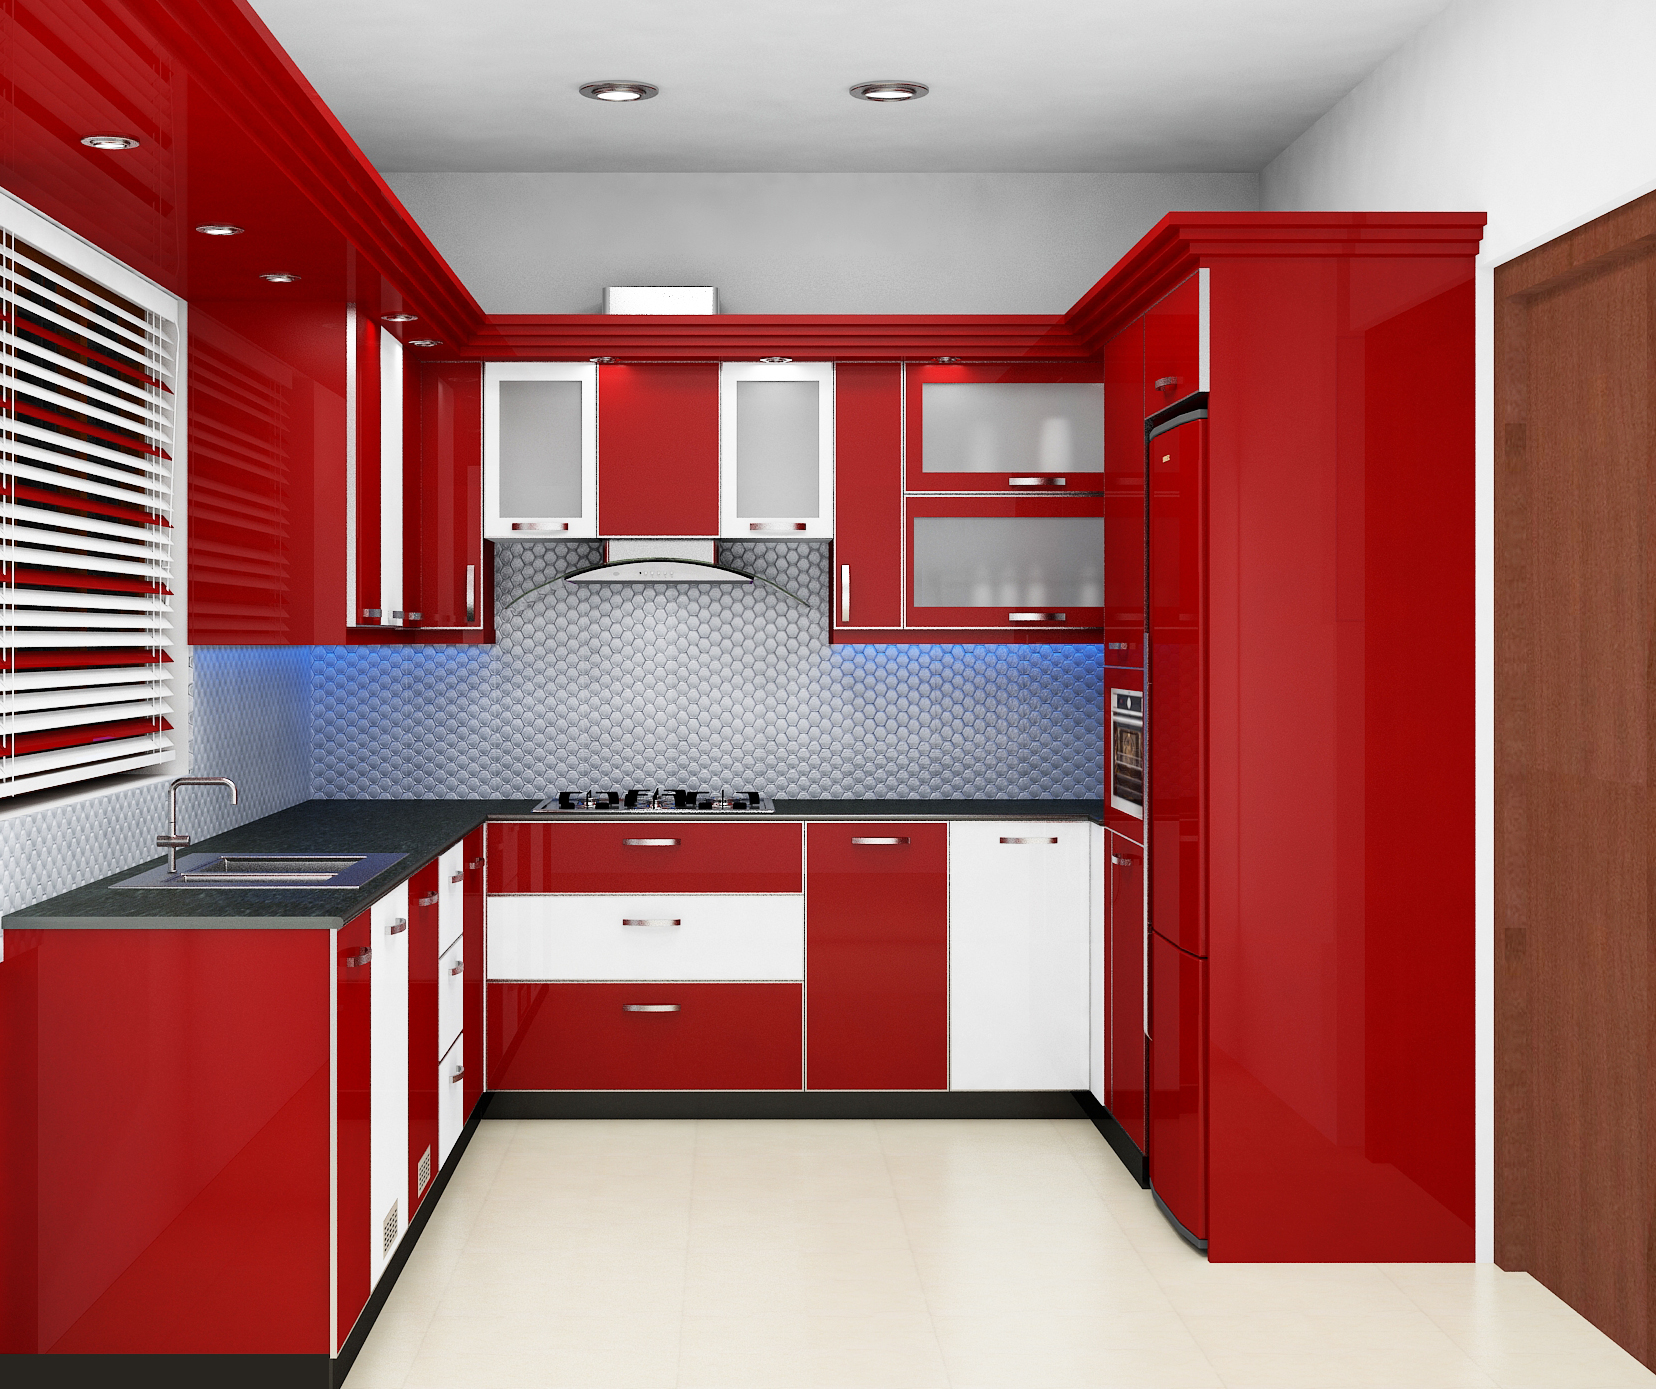 Exemplary and amazing modular kitchen home interior design for 1 room kitchen interior design